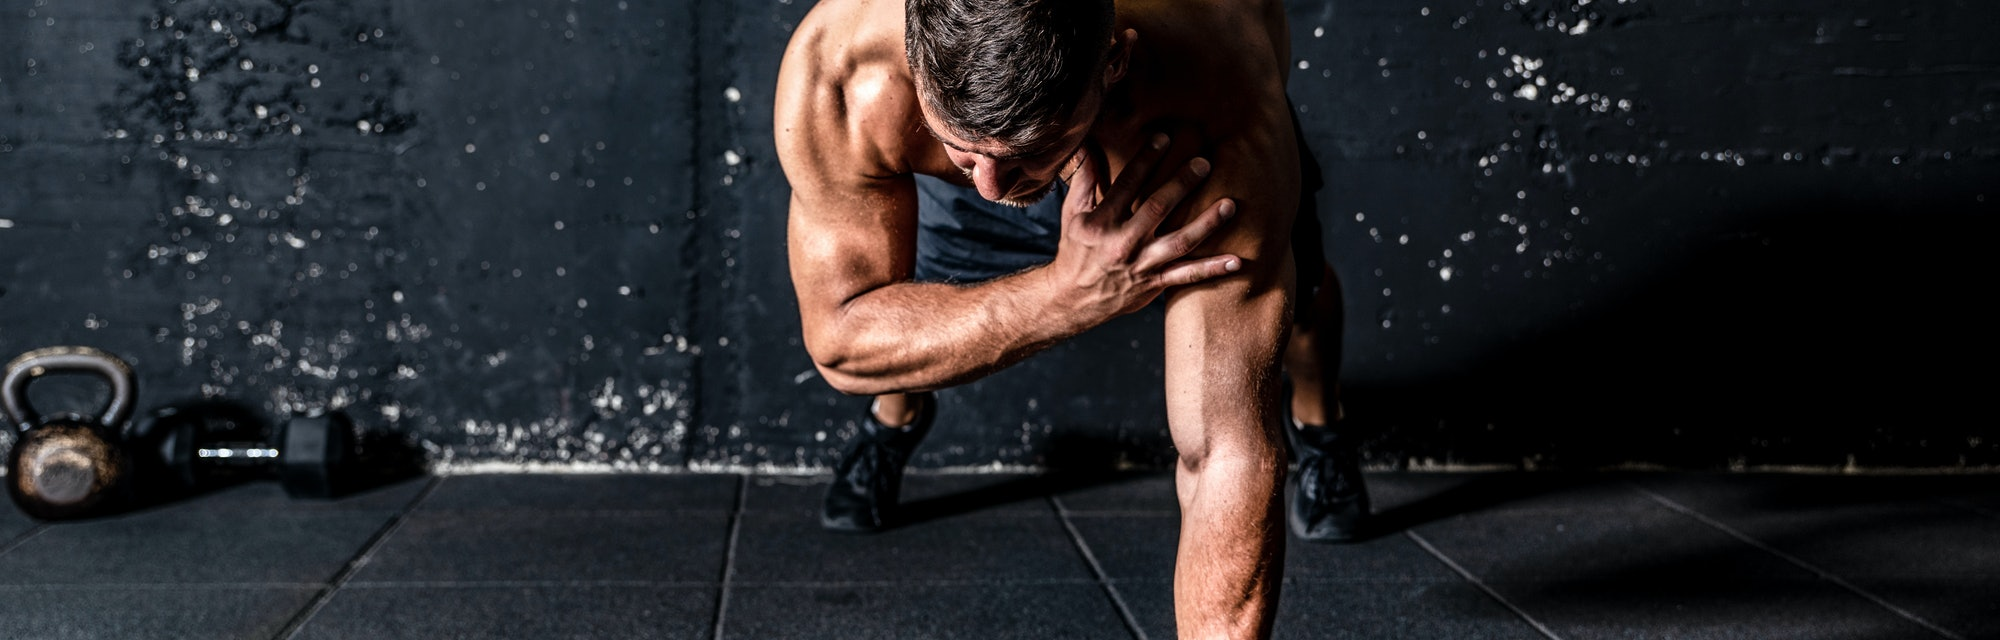 Young sweaty strong and fit muscular man push ups workout with touching his shoulder on one hand in the gym on the floor cross training